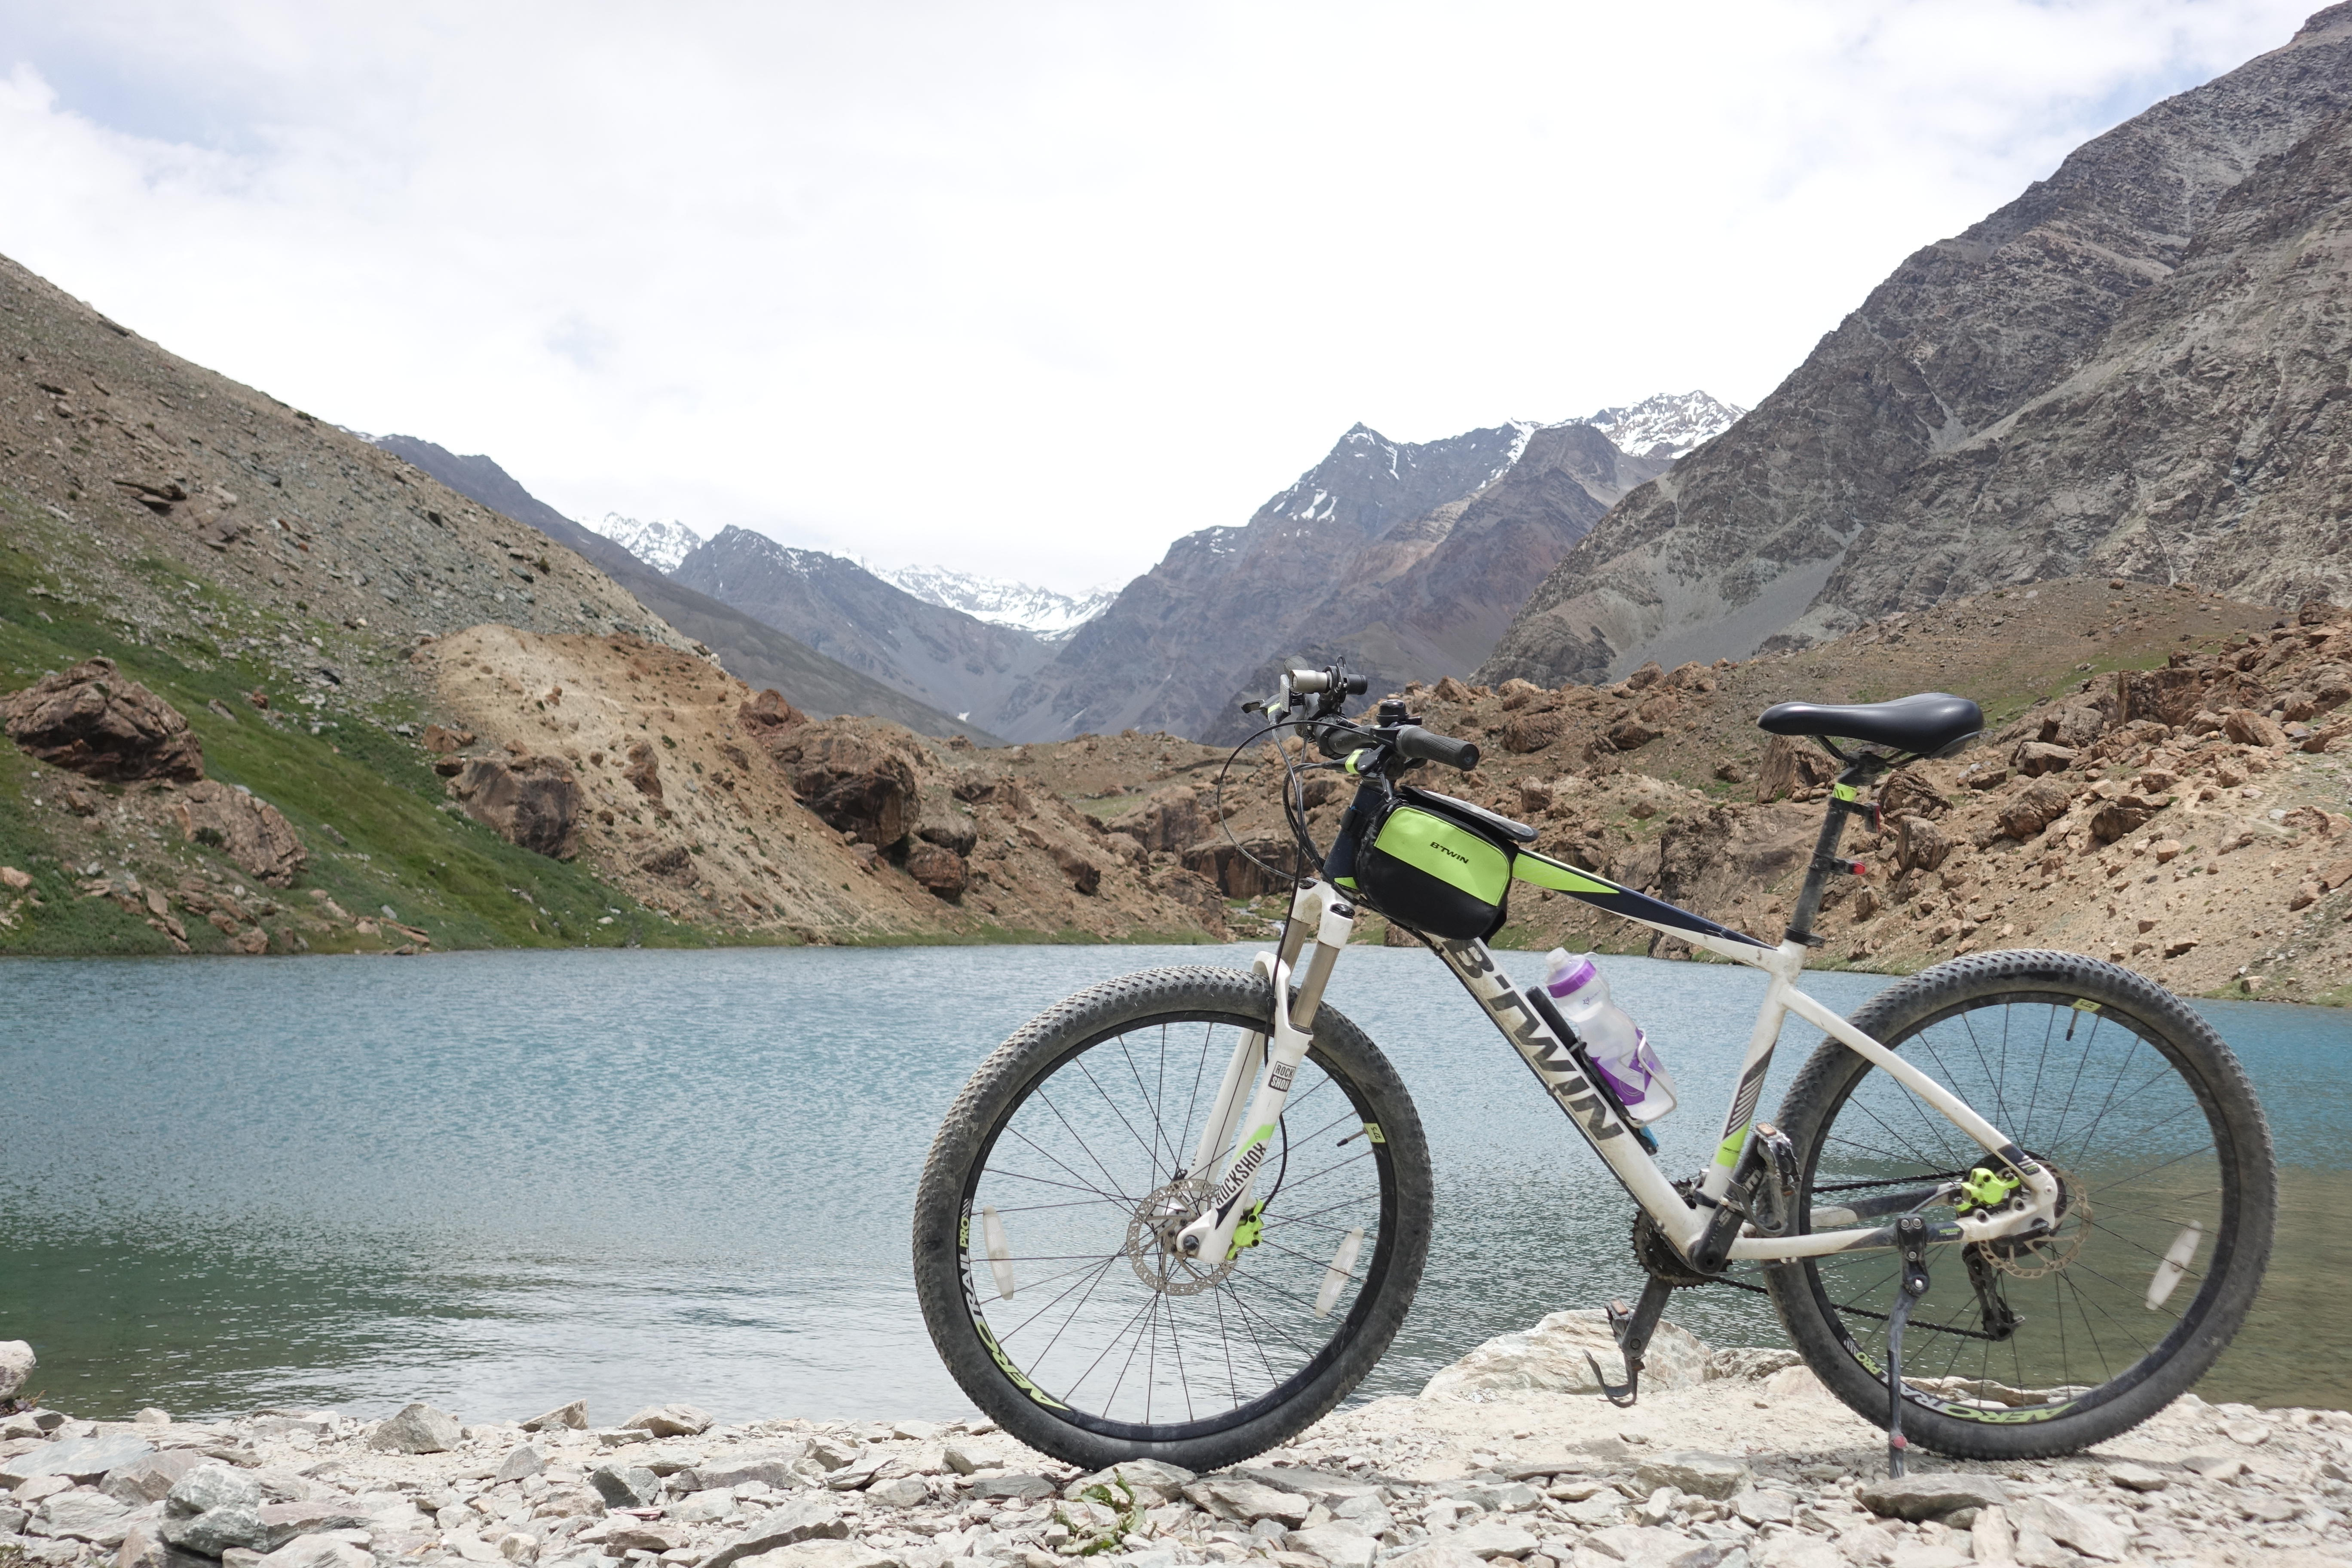 Manali to Leh Cycling Tour Itinerary and Experiences